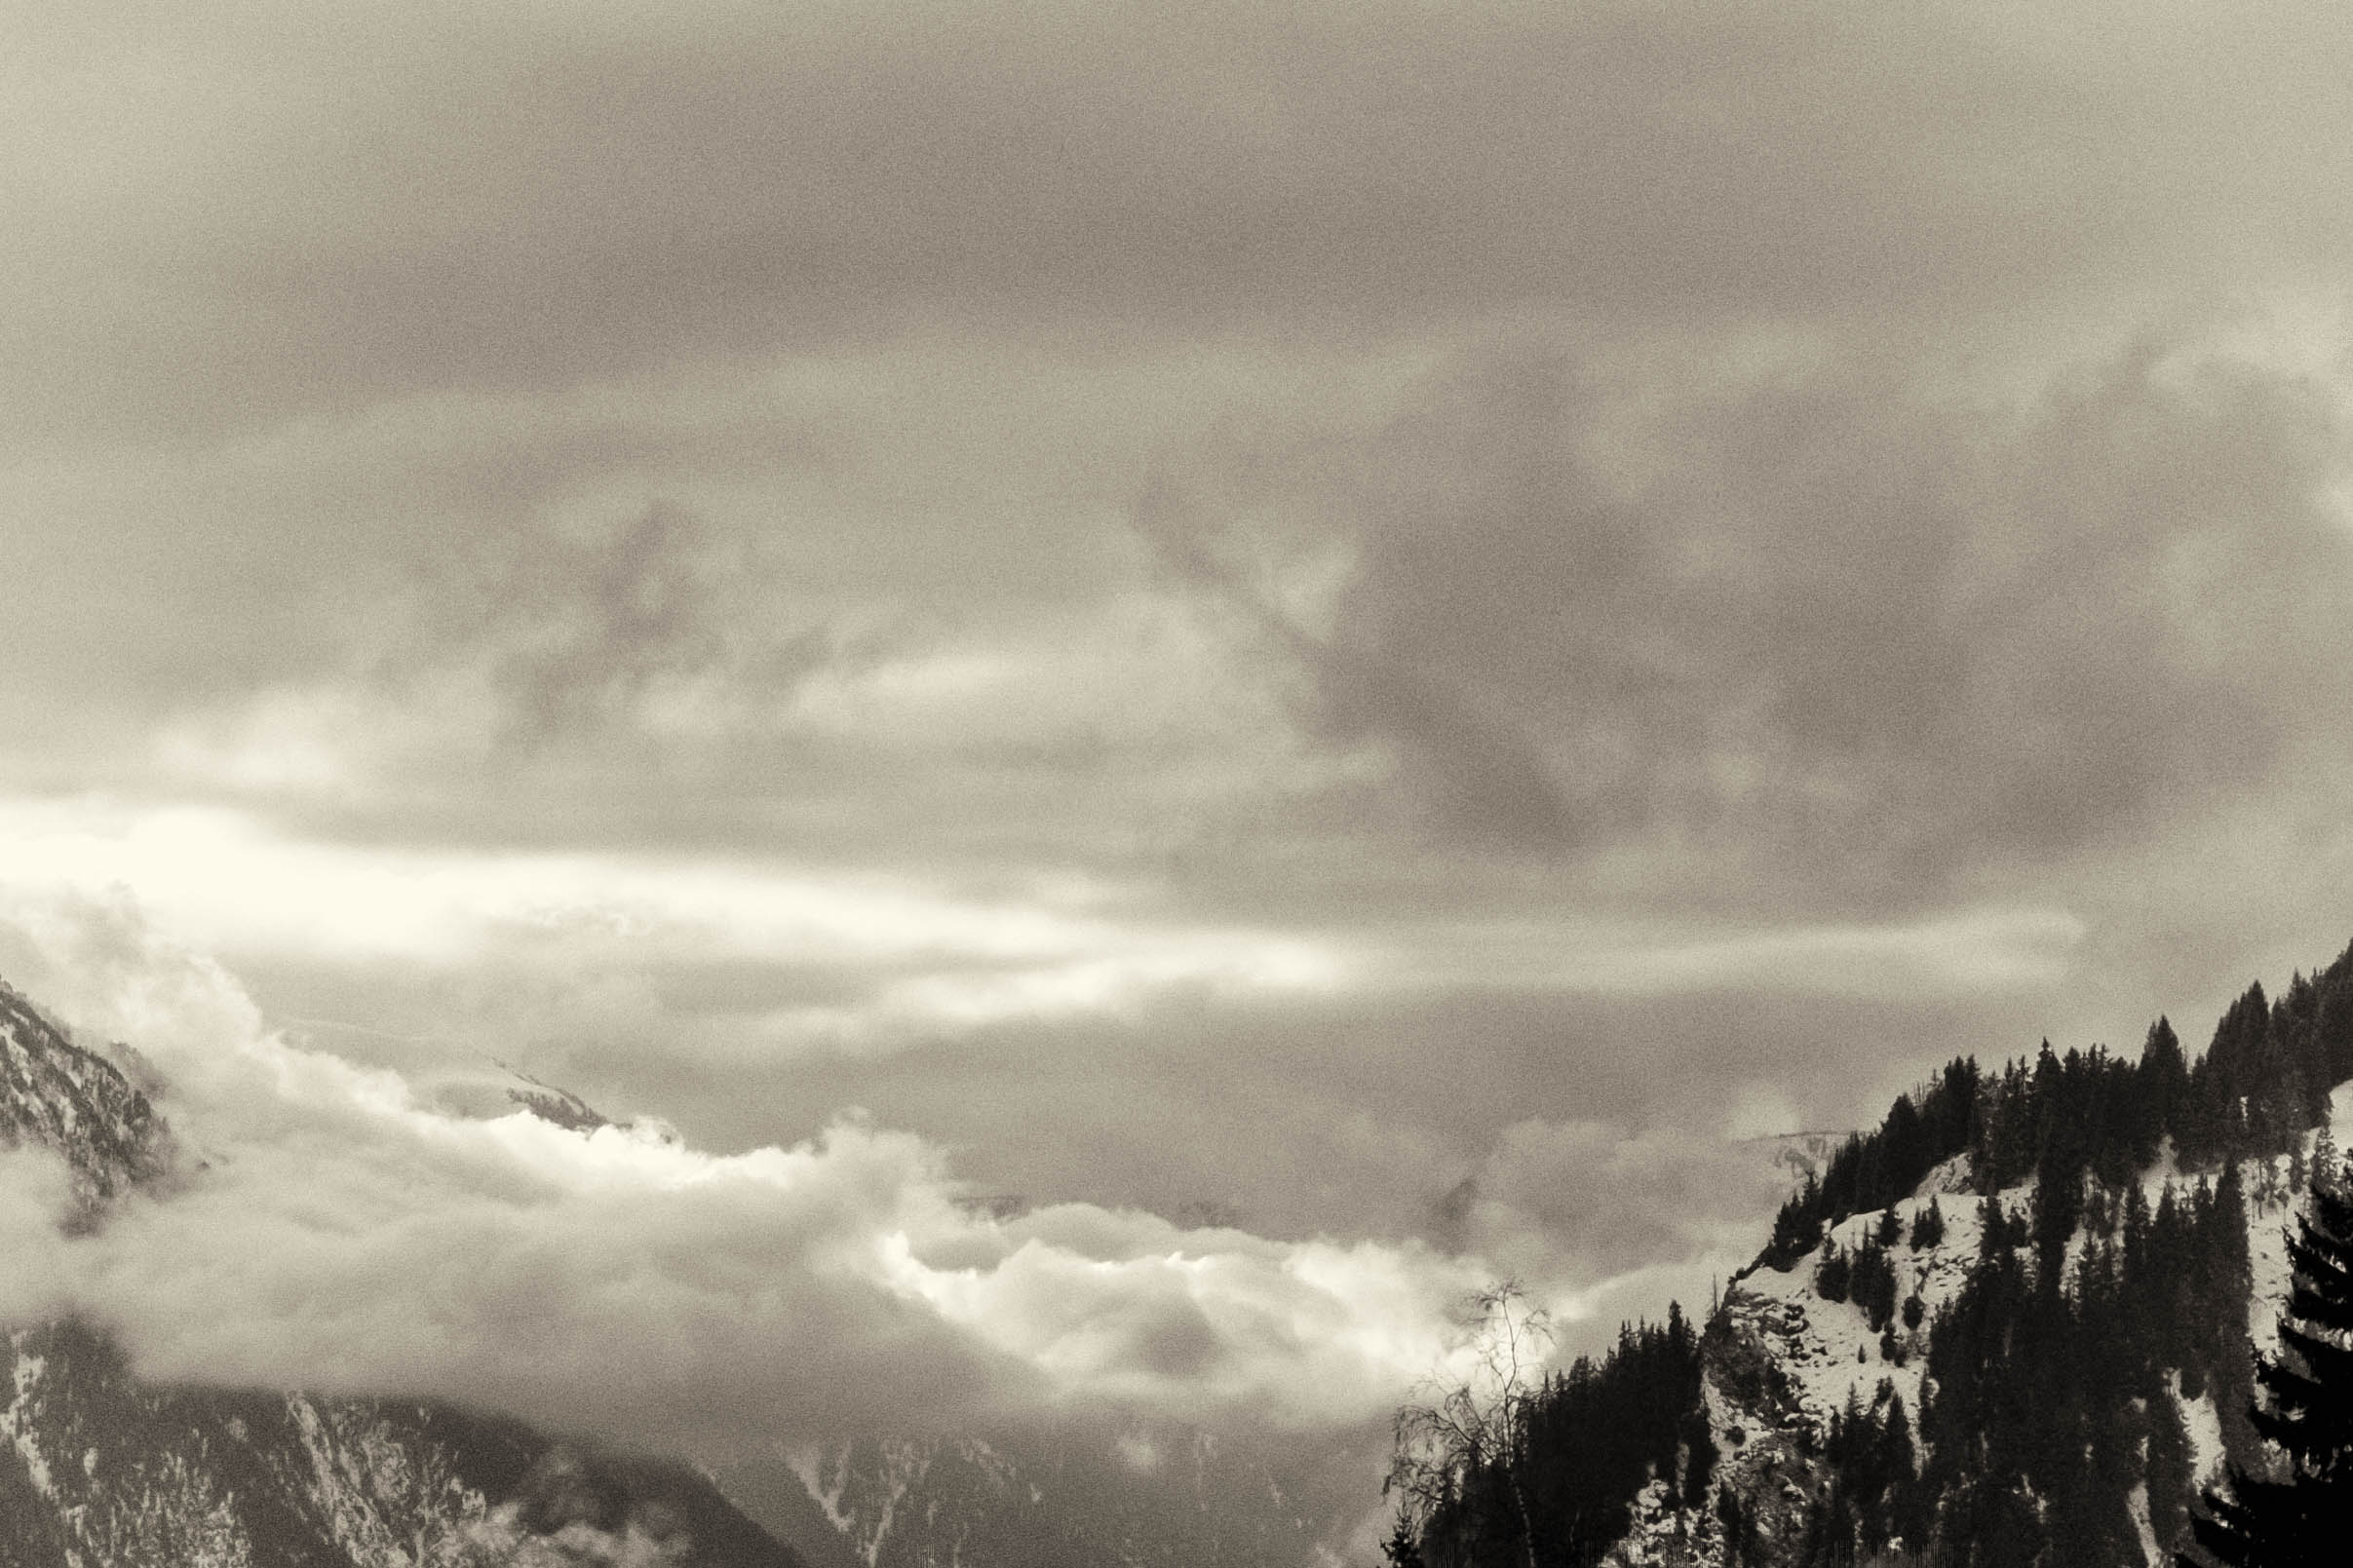 20180210-DSCF0603_cloudsverbier-Edit.jpg